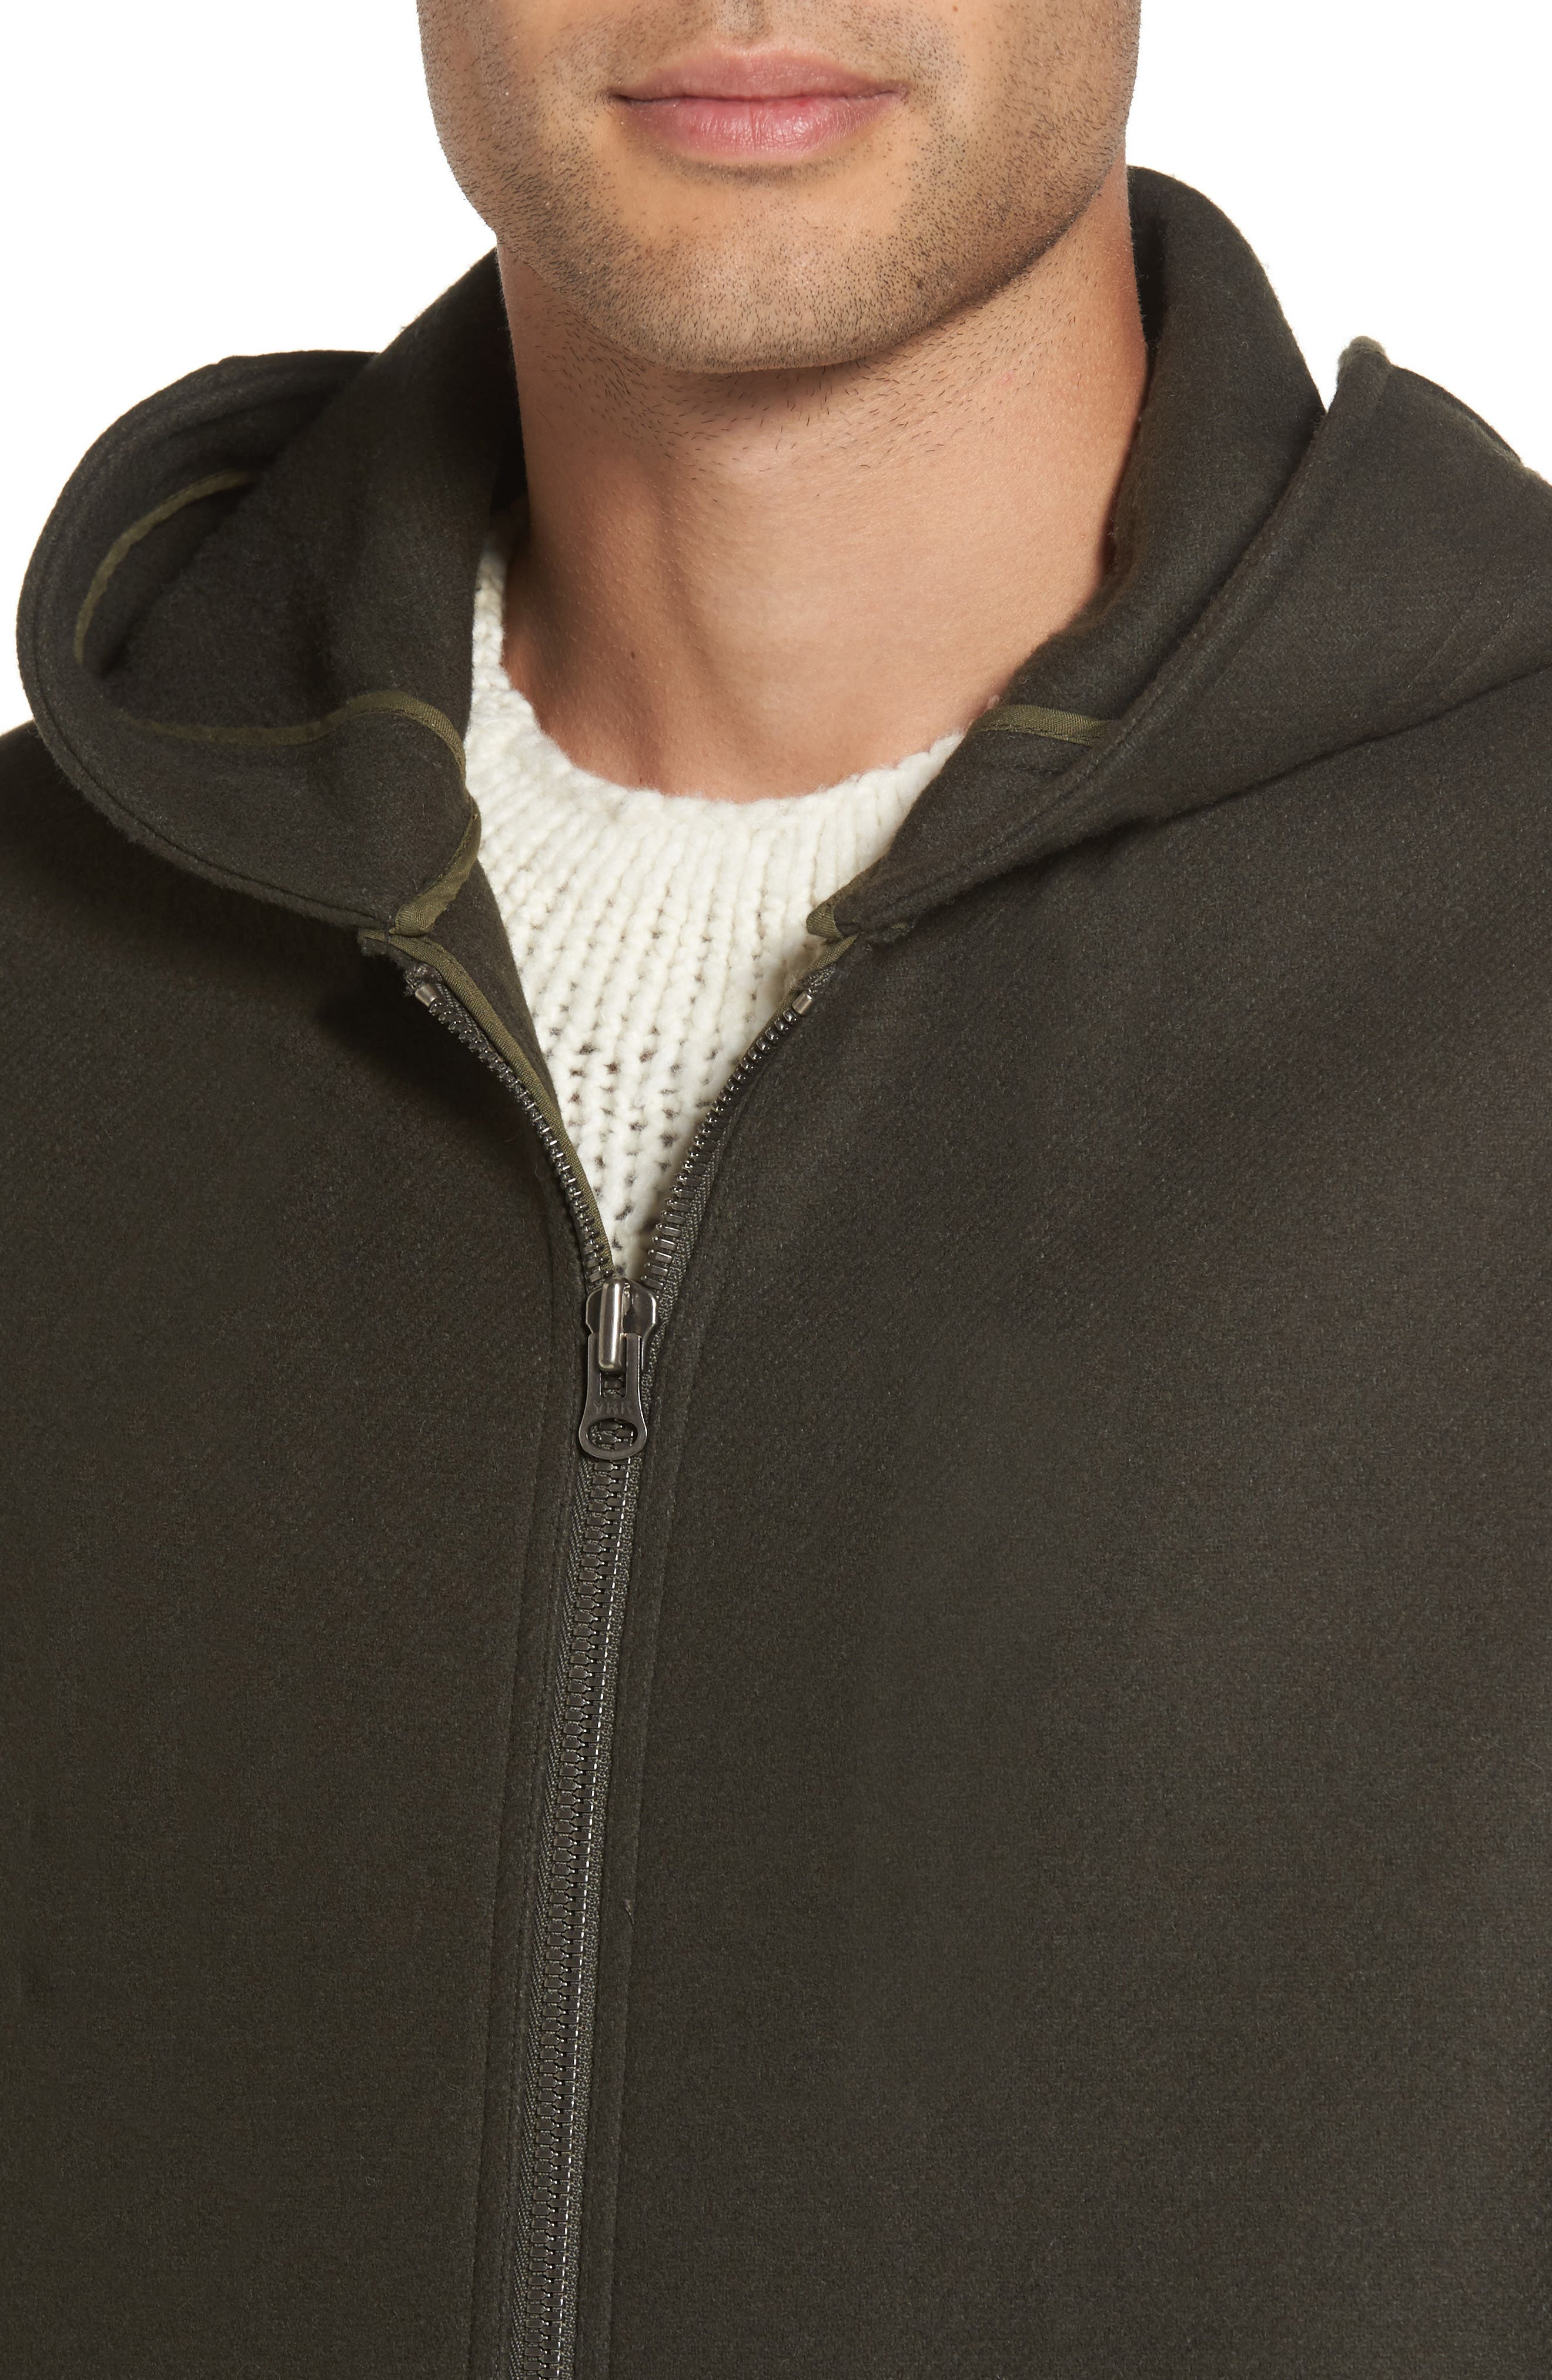 Fleece Zip Hoodie,                             Alternate thumbnail 4, color,                             Olive